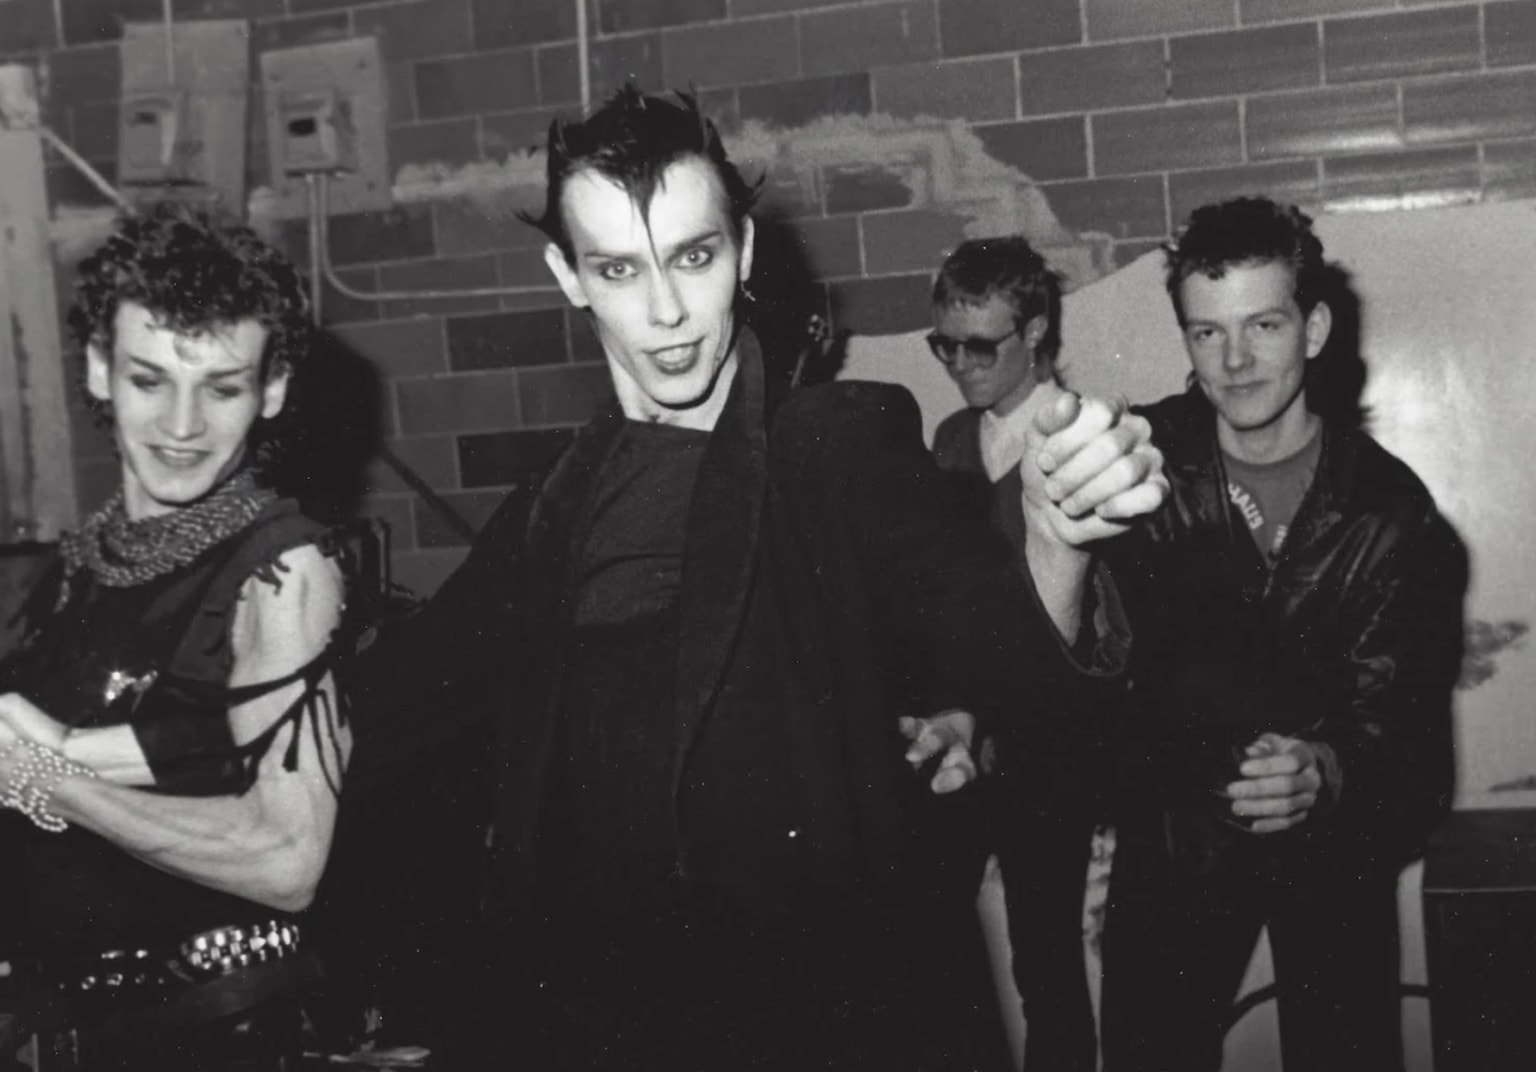 Bauhaus' Kevin Haskins Digs Up the Past in a New Art Book, 'Bauhaus - Undead'